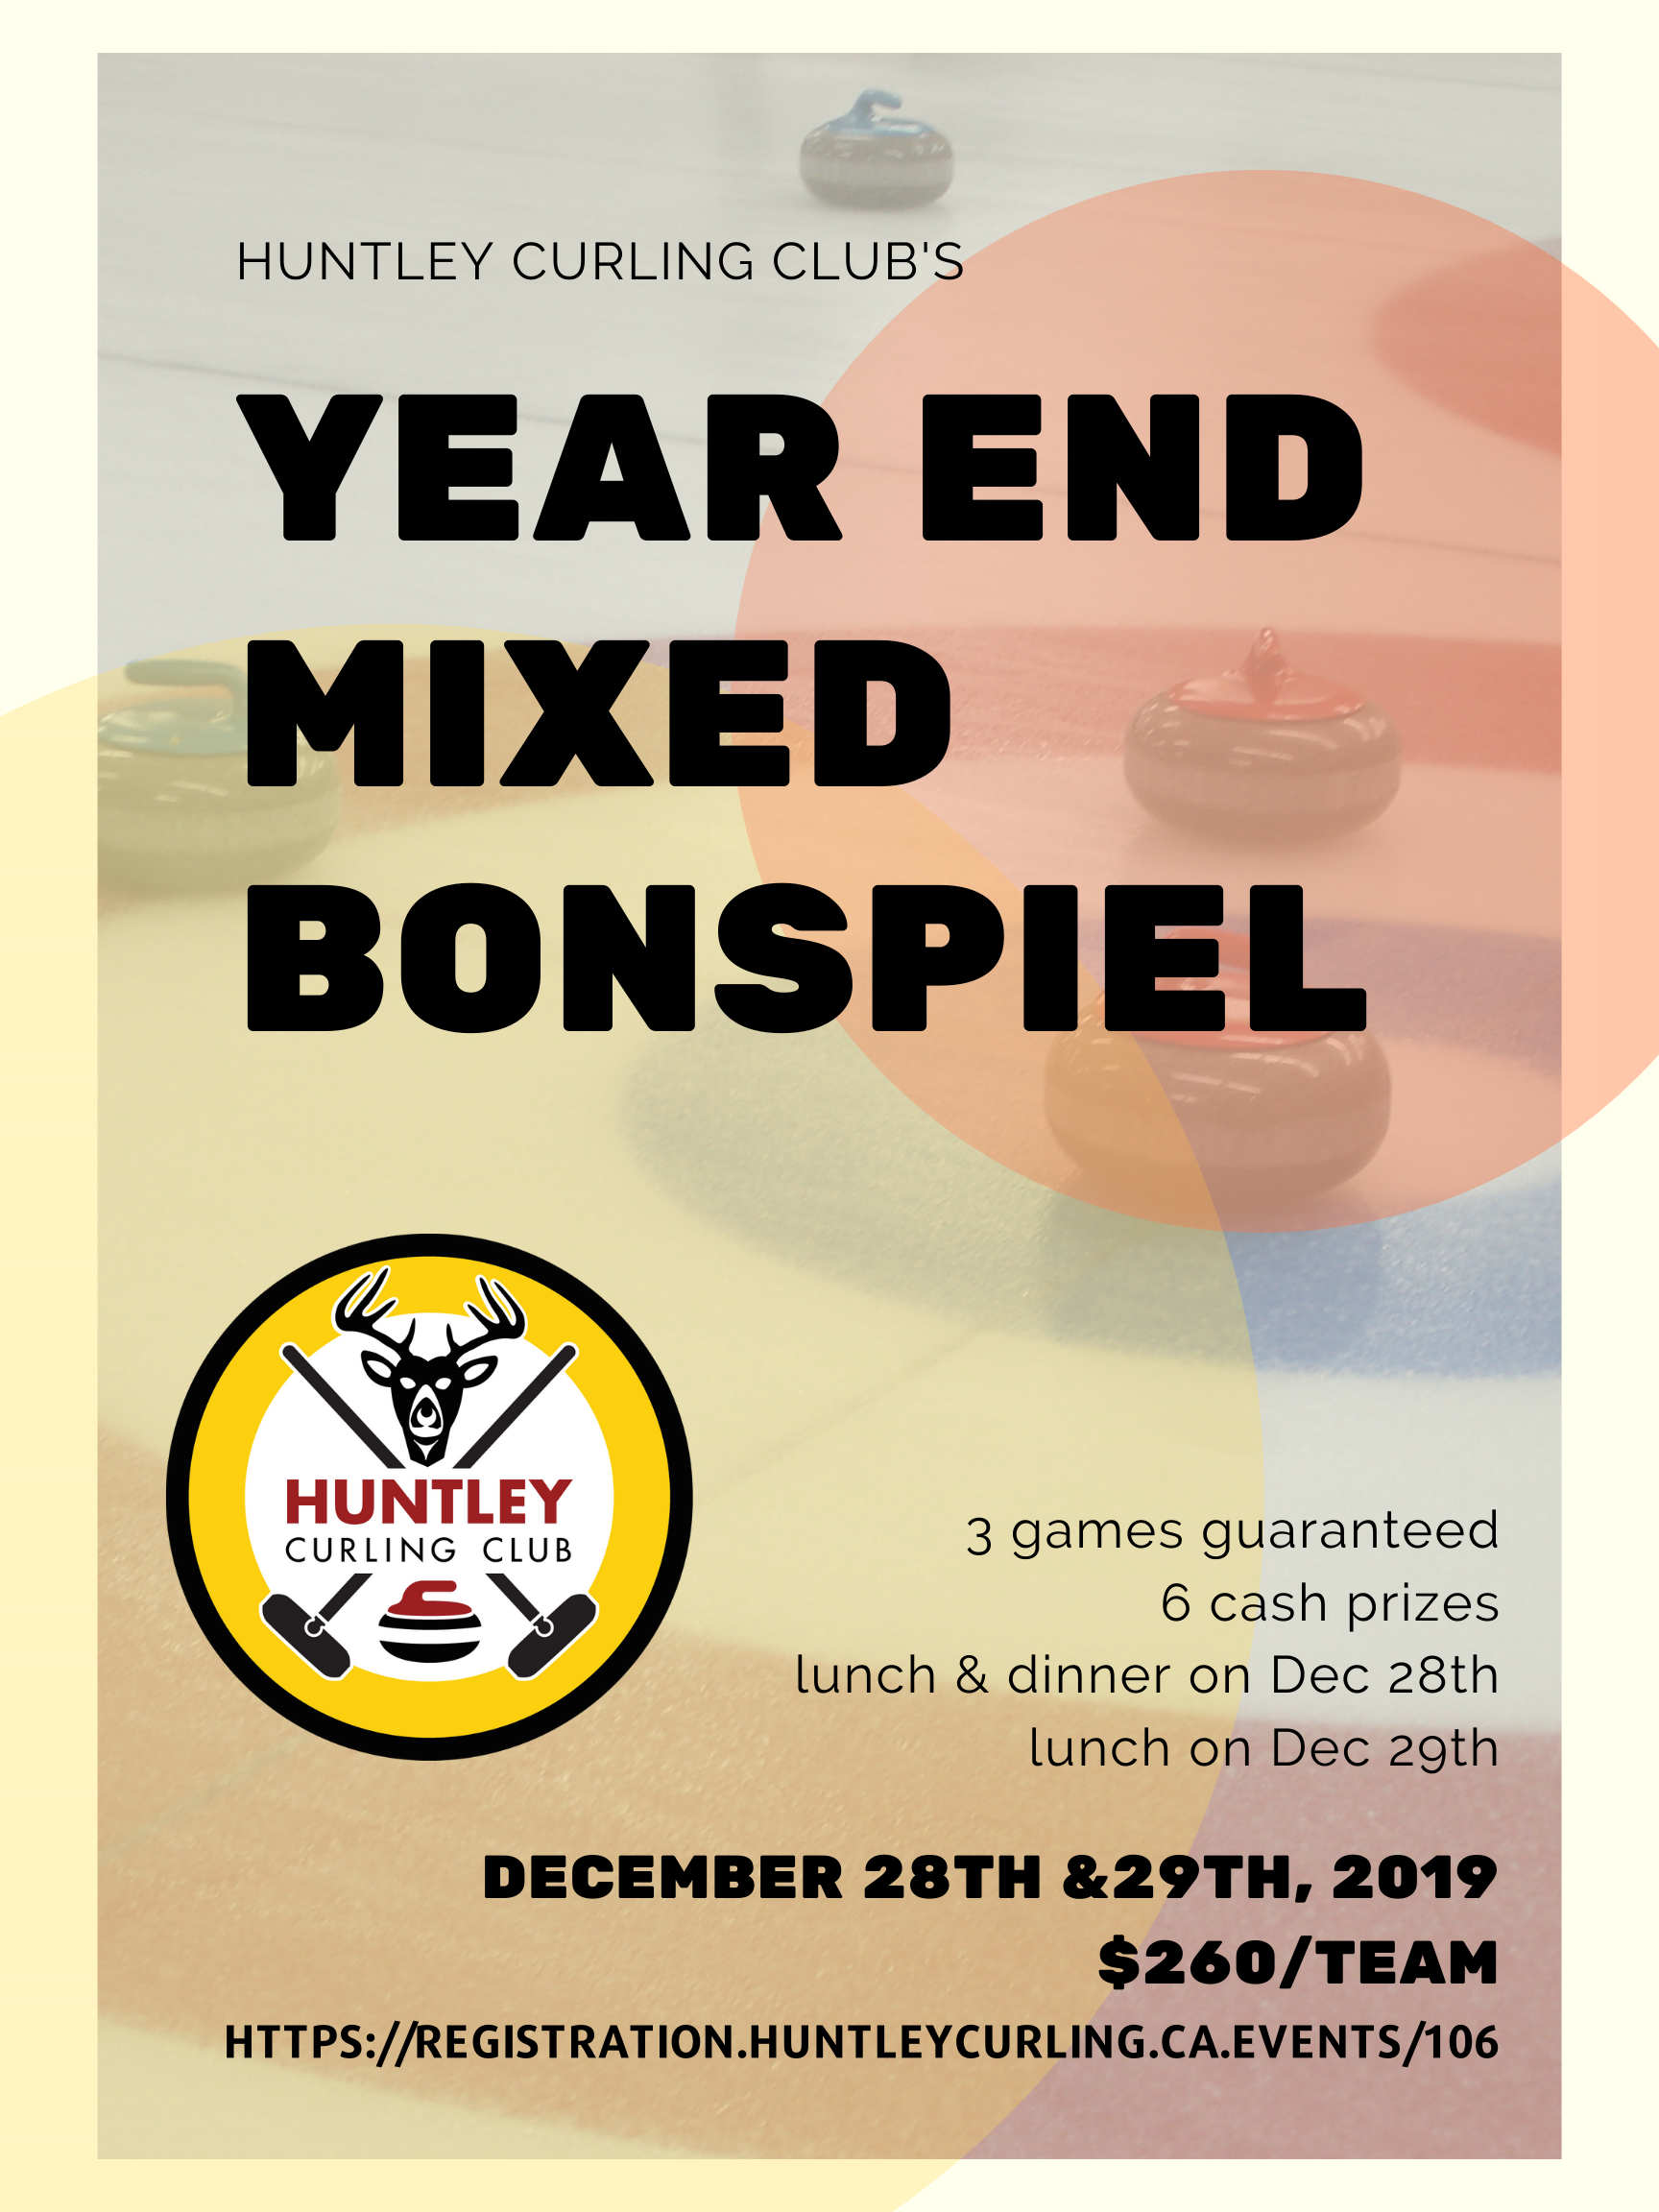 Year End Mixed Bonspiel